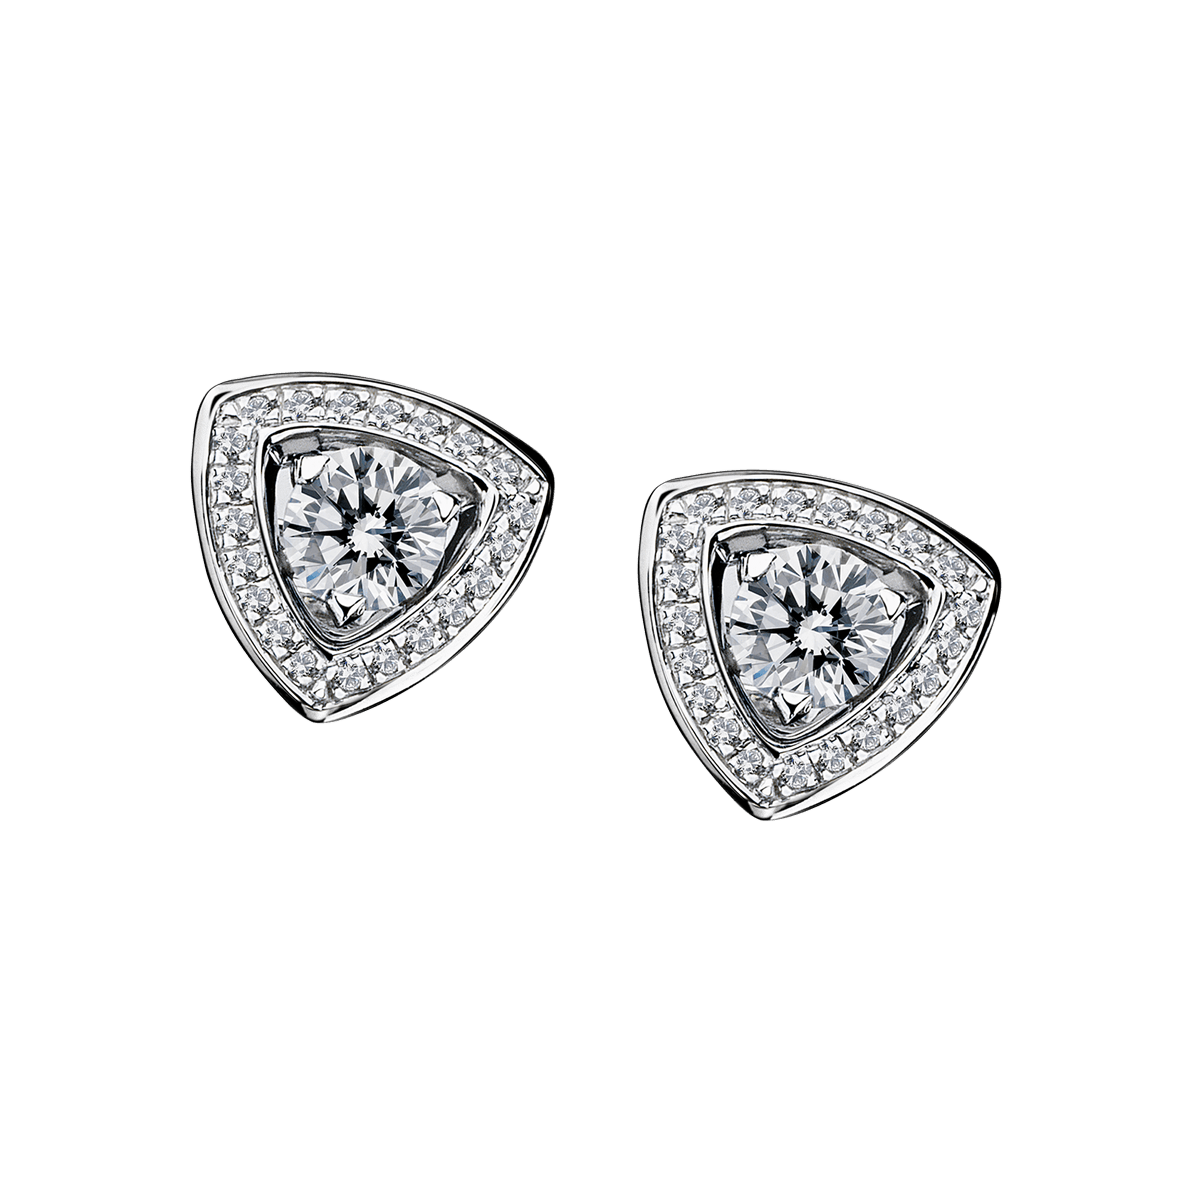 Dream & love Earrings, white gold, 2*0,30 carat approximatively, diamond pavement